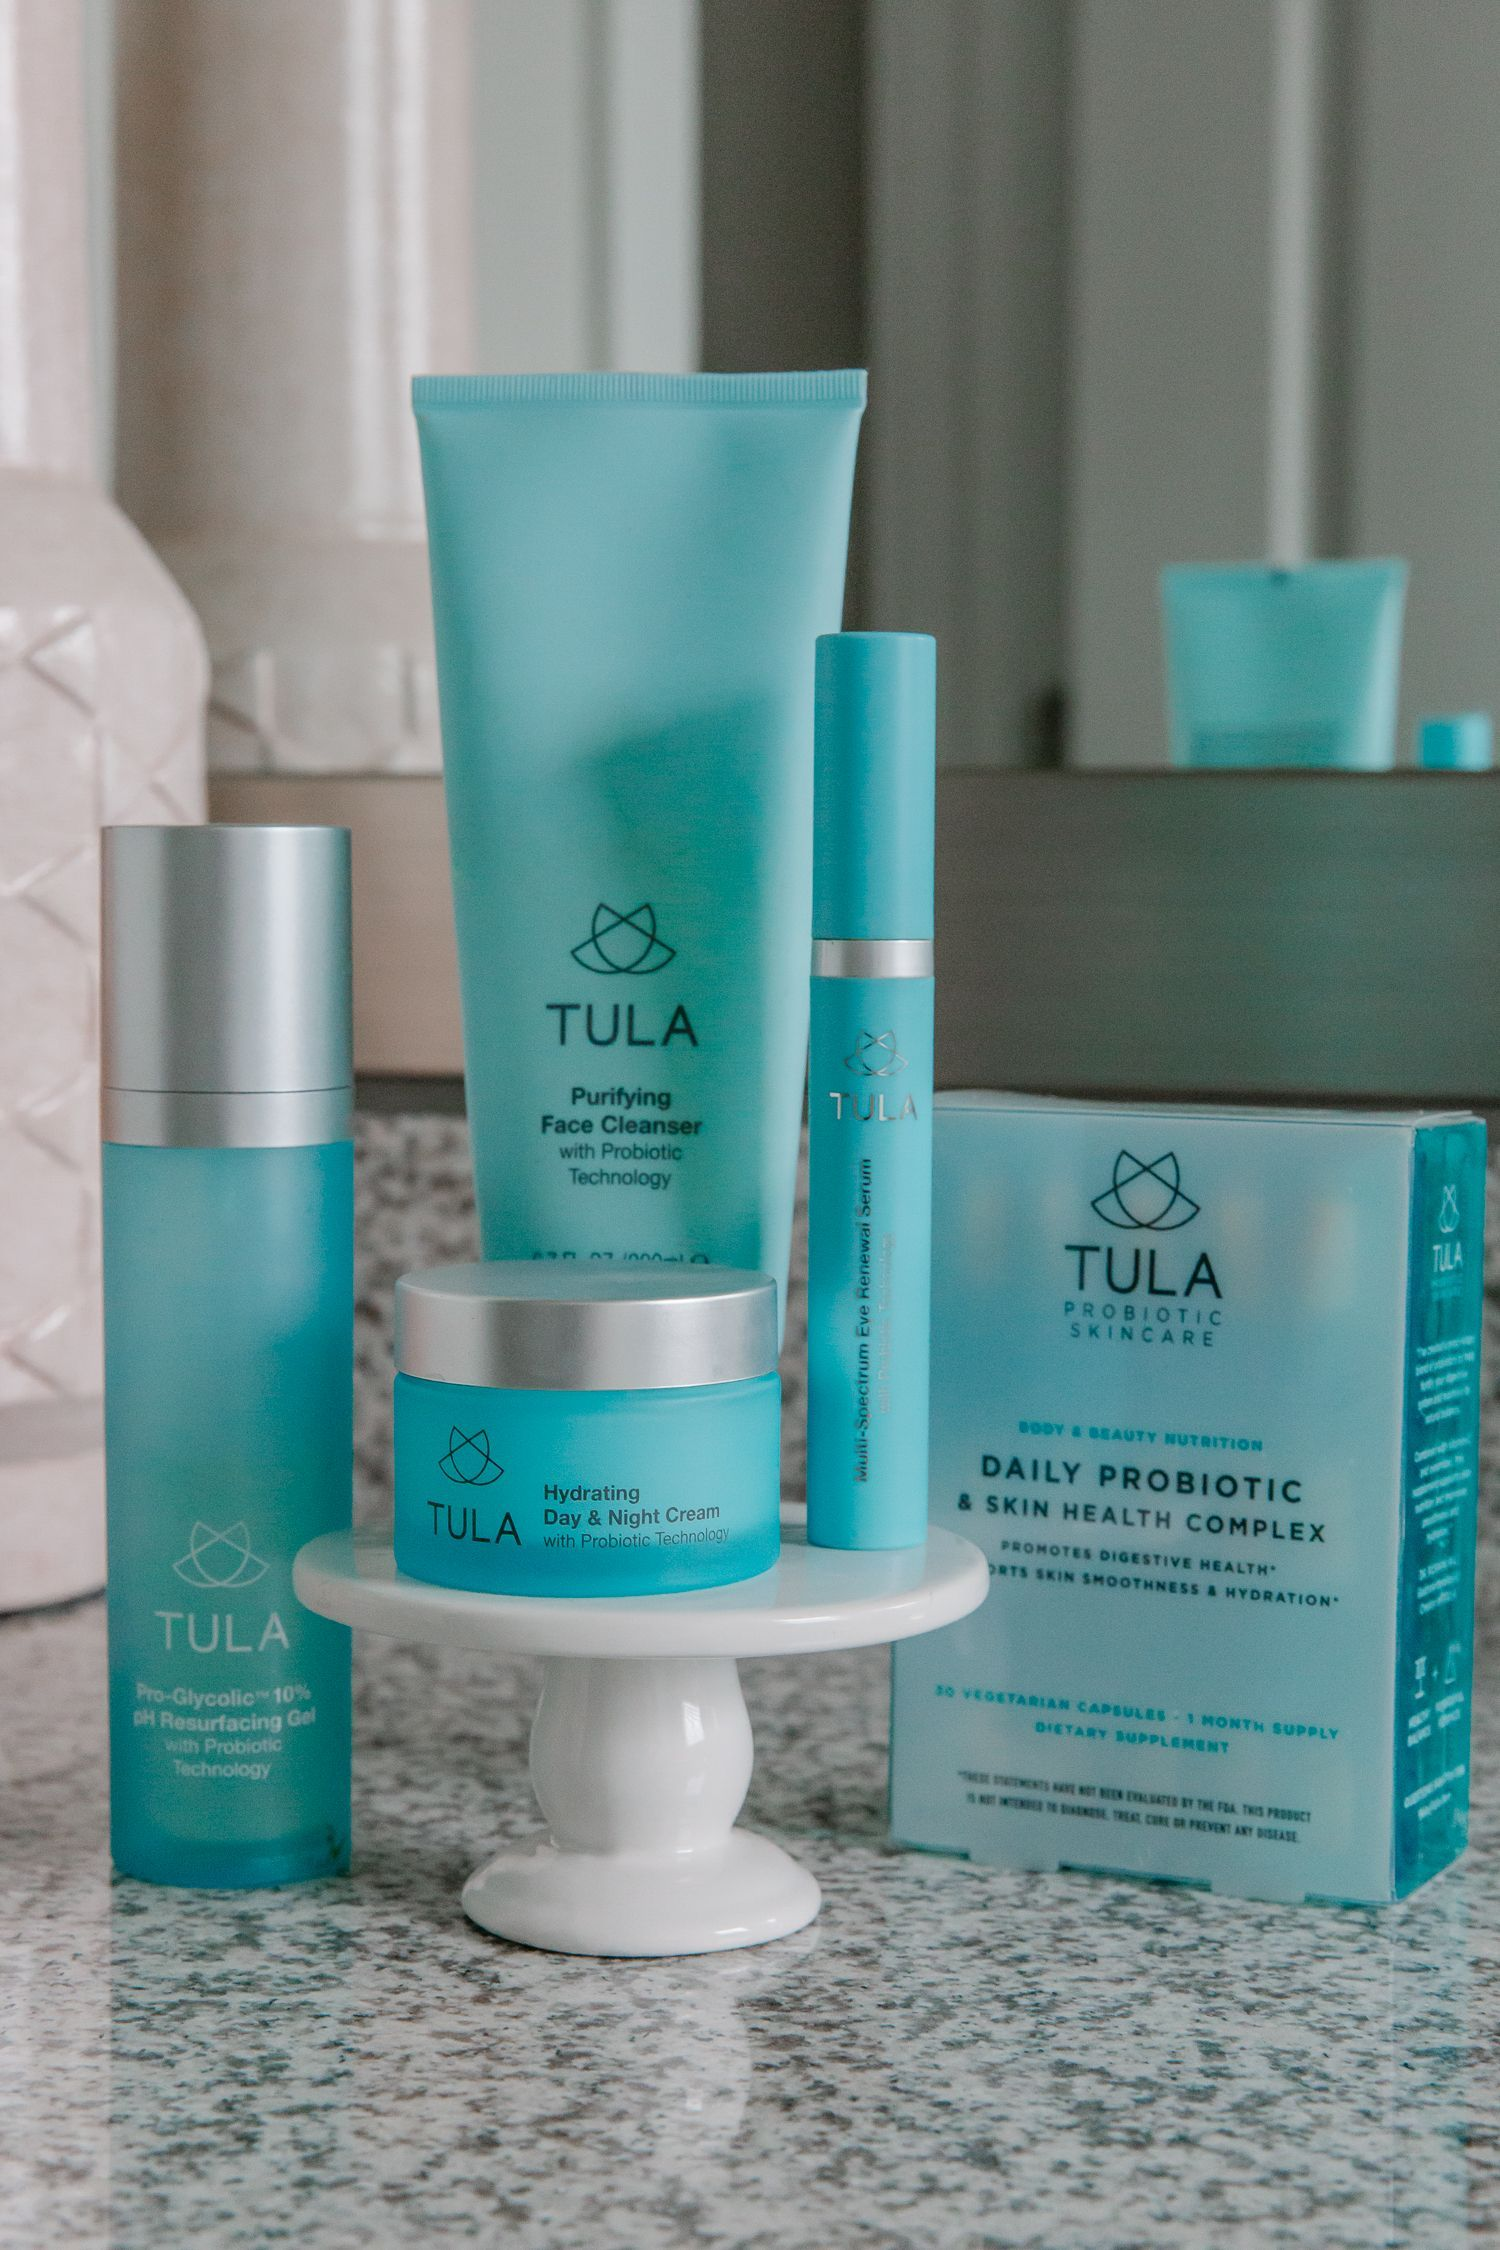 The Summer Of Skin Care Getting To Know Tula And Why Are There Probiotics In Their Skin Care Makeu Makeup And Beauty Blog Skin Care Face Products Skincare